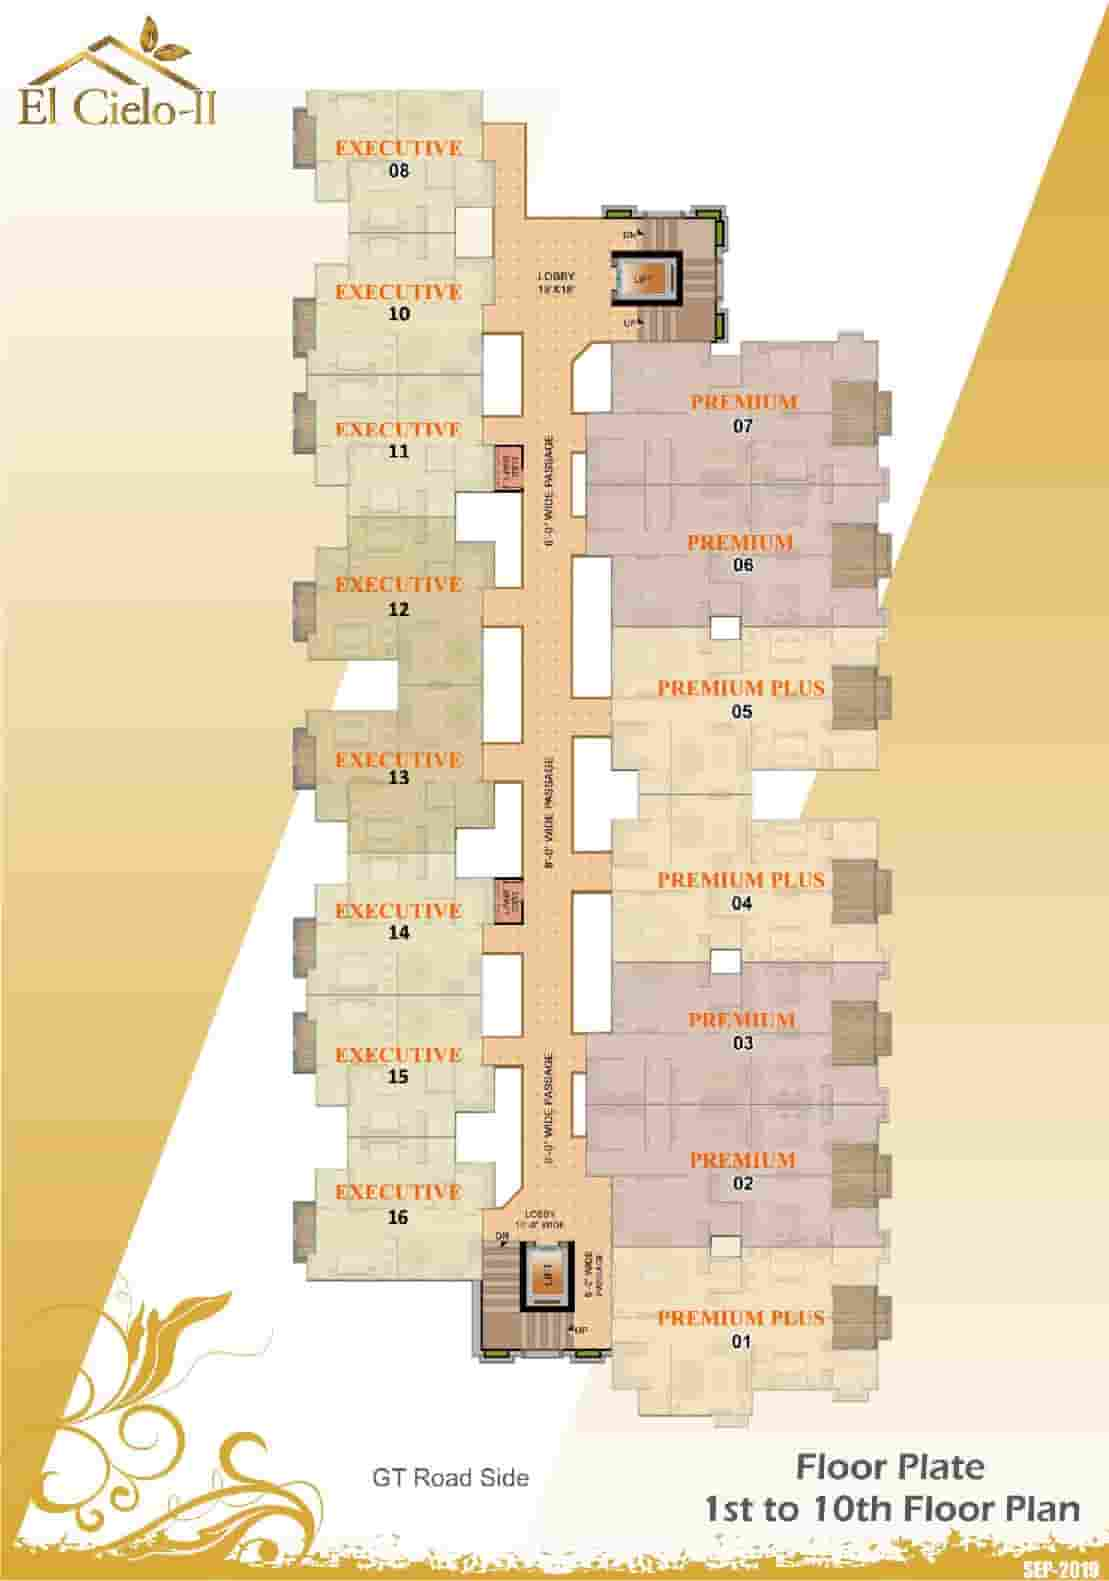 El Cielo-II 1st to 10th Floor Plan